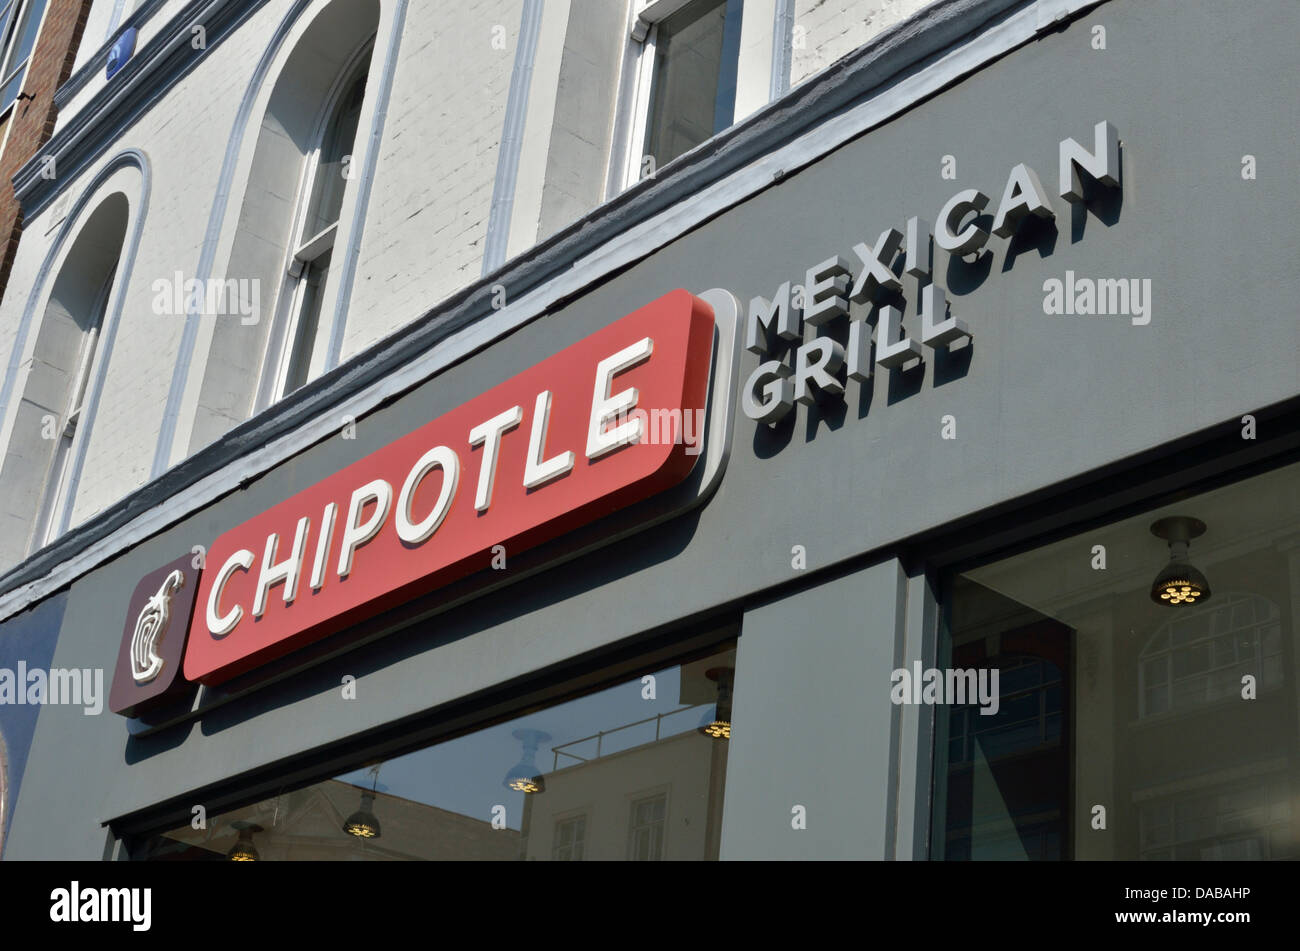 Chipotle Mexican Grill Restaurant Stock Photos Chipotle Mexican